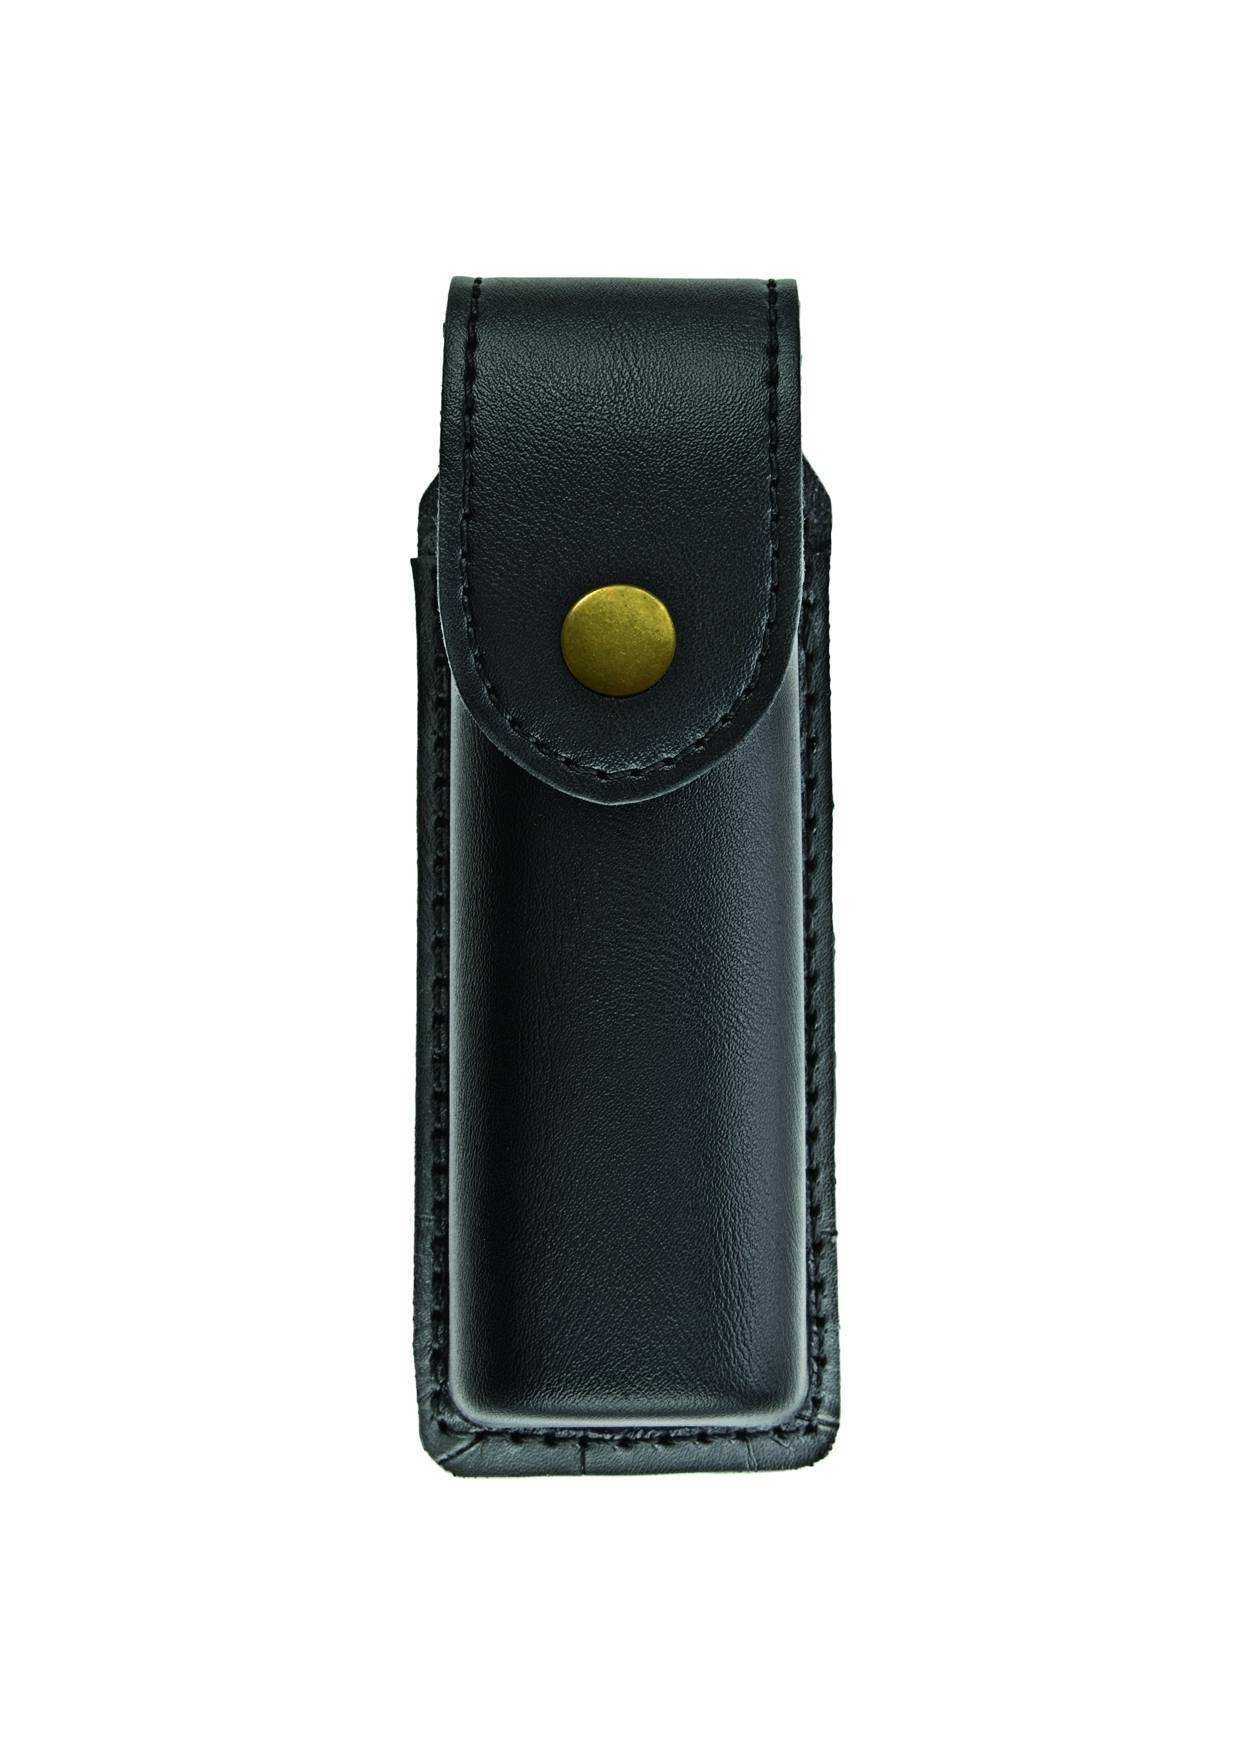 O.C. (Pepper) Spray Case, Medium, MK4, AirTek, Smooth, Gold Snap-